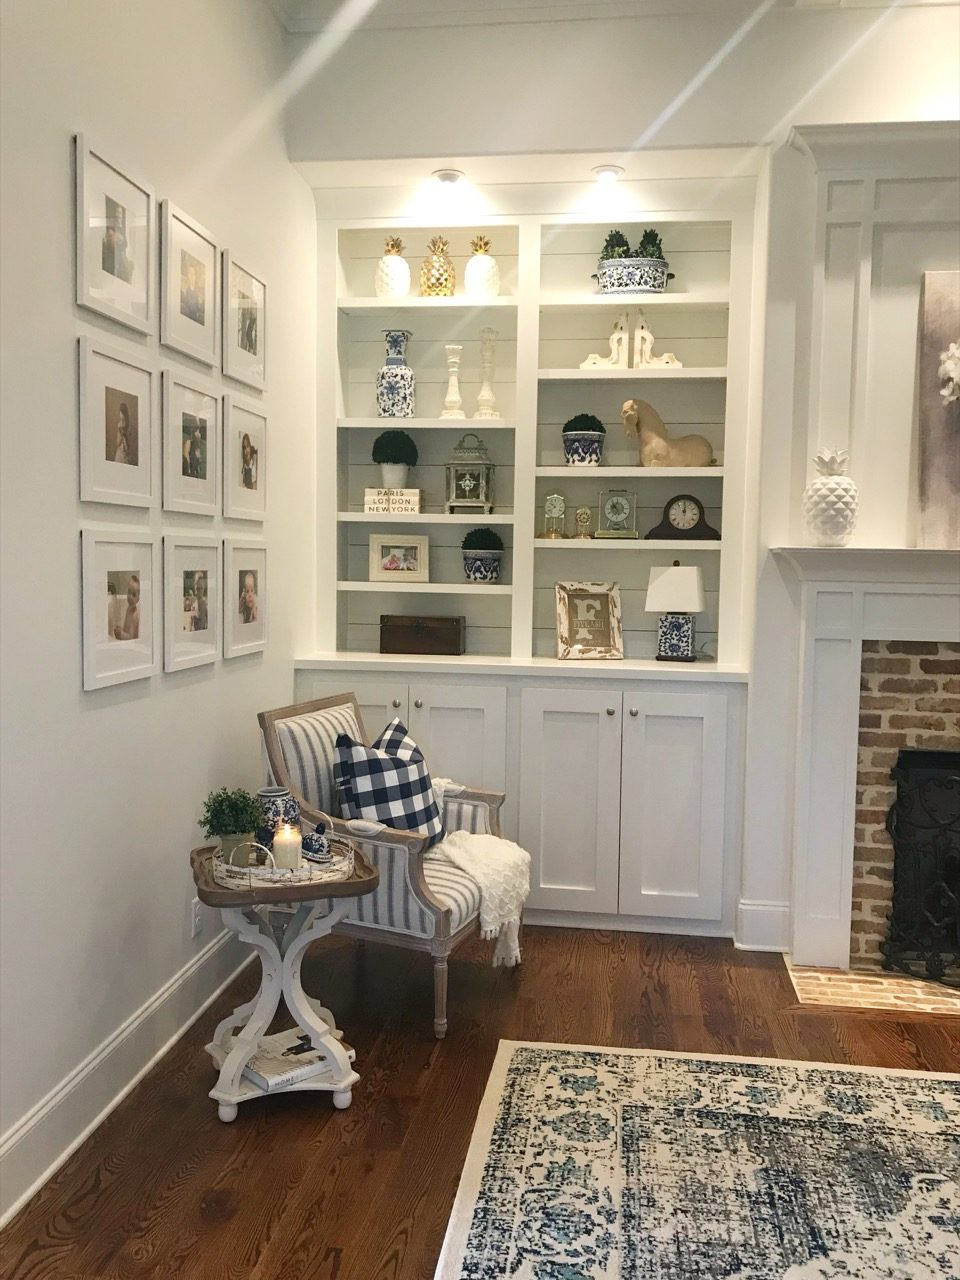 3x3 gallery wall in living room